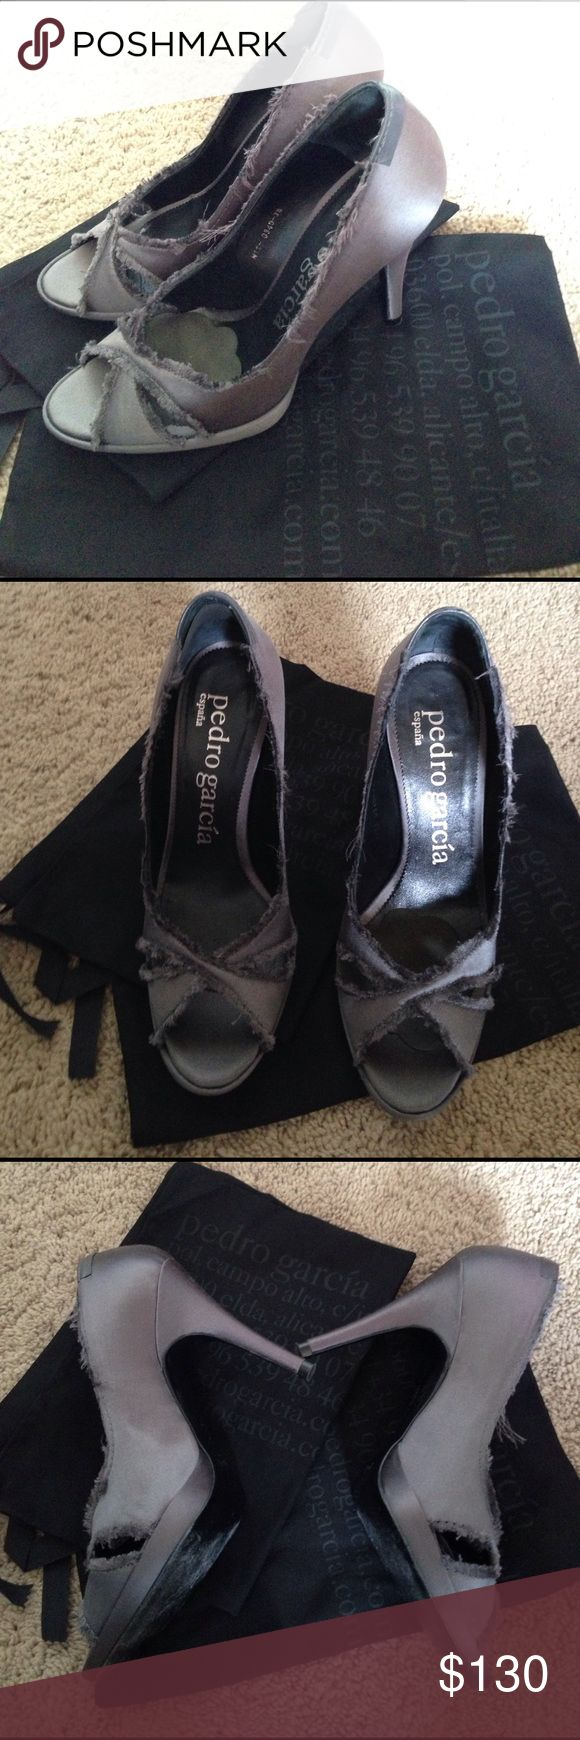 Pedro Garcia heels Pedro Garcia heels in owned perfect condition in size 38 which is a 8. The shoes are grey color. The style is called Dannie. And the shoes are fox satin. pedro garcia  Shoes